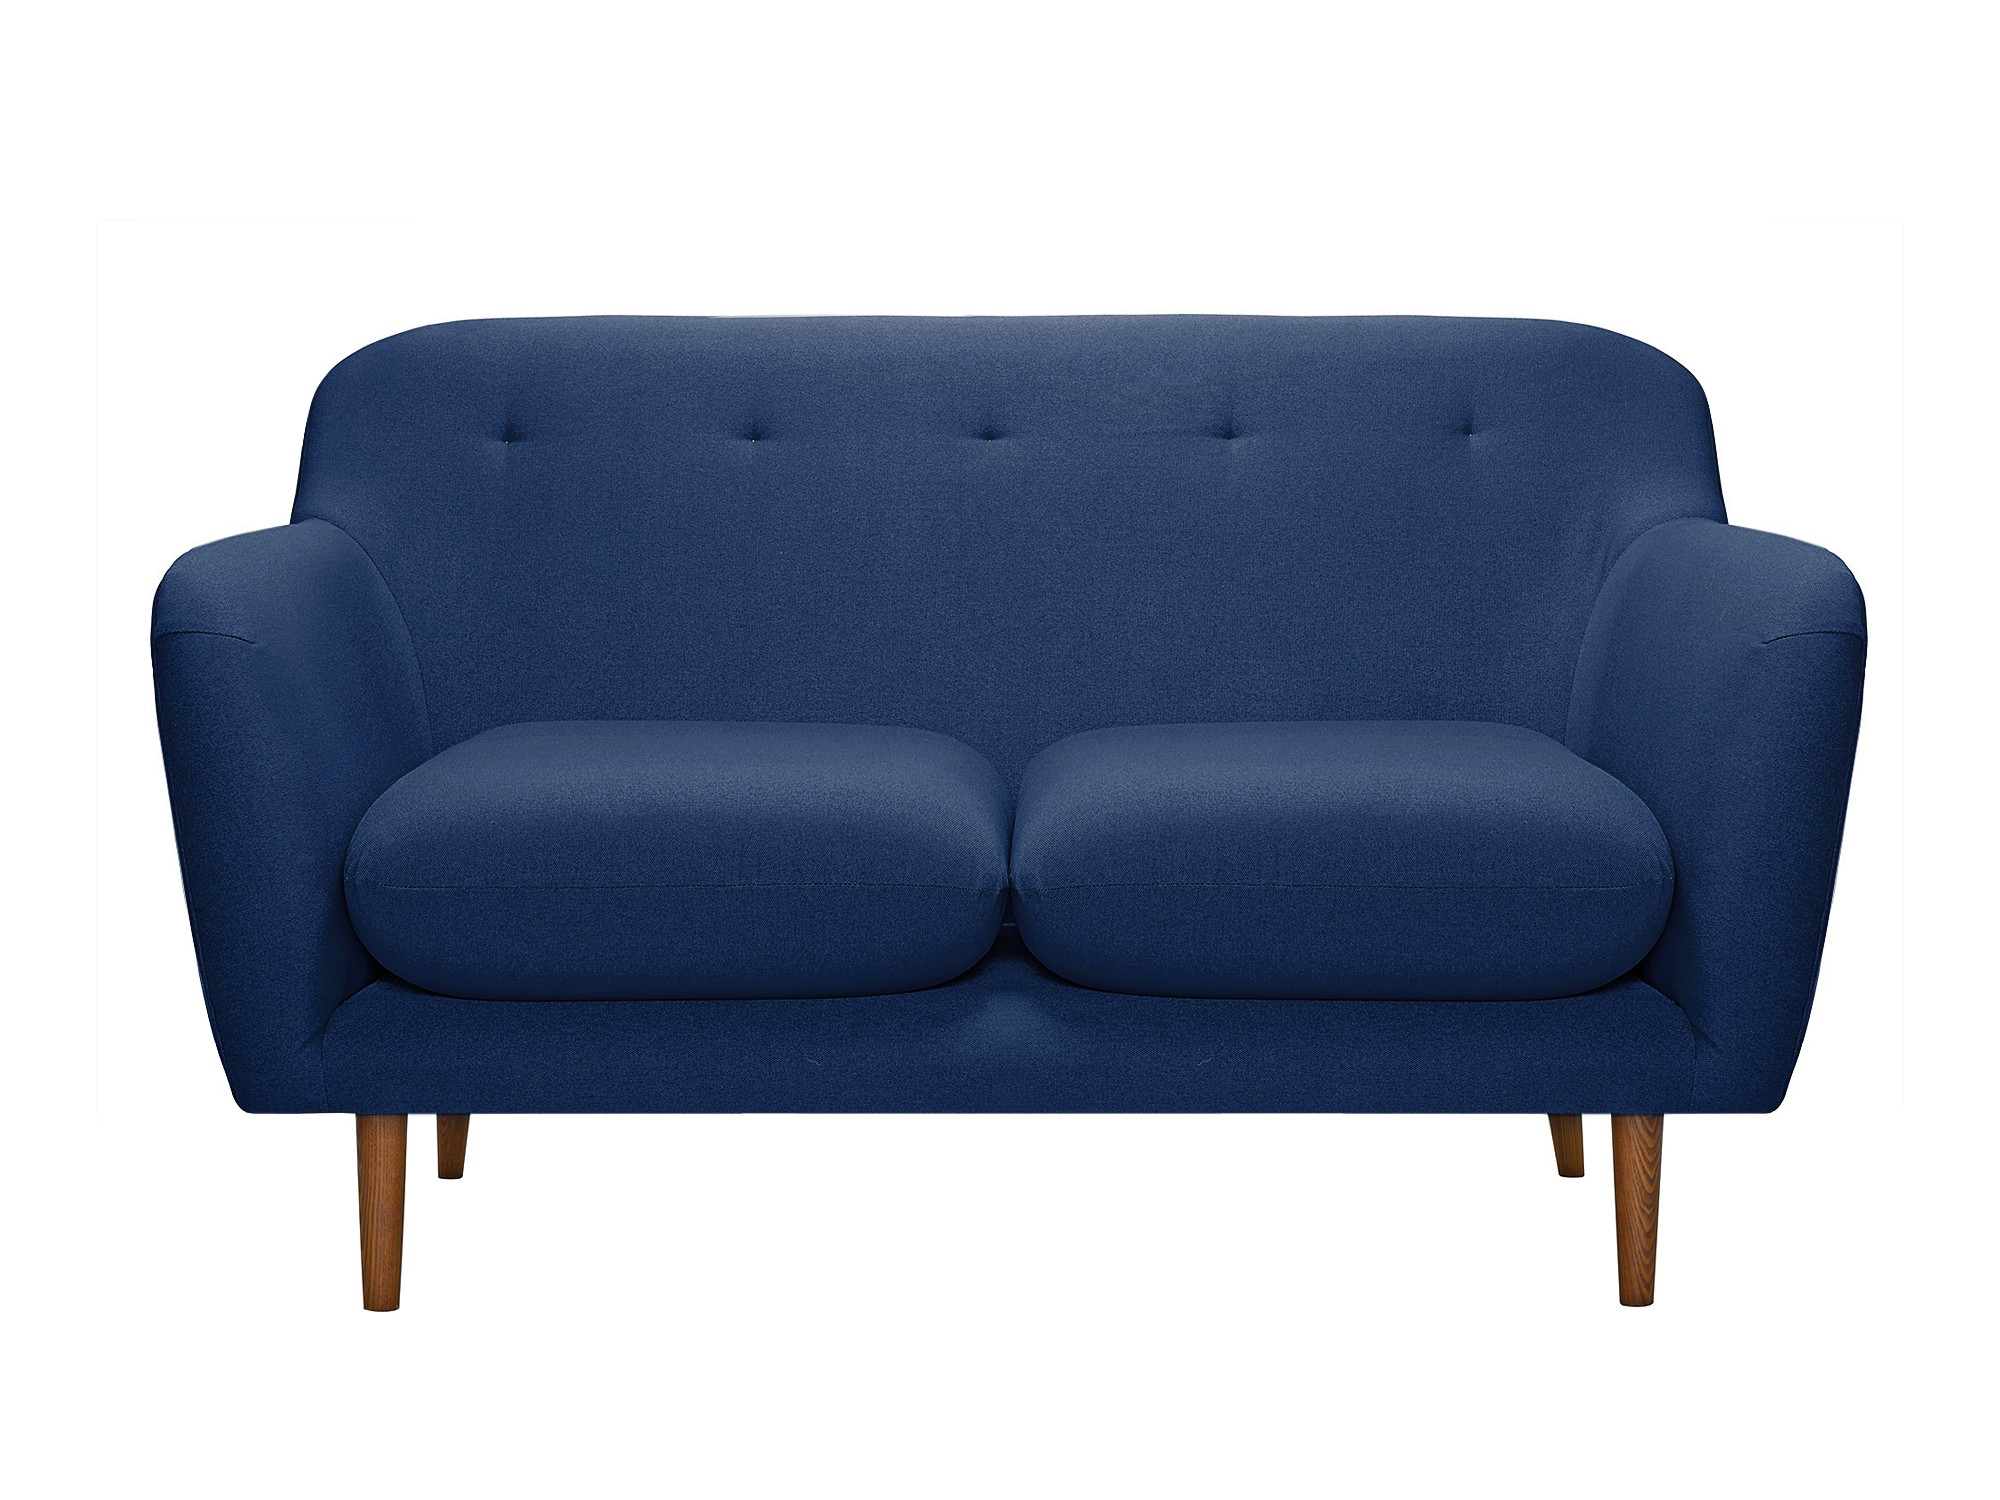 Myfurnish диван oslo синий  67891/9